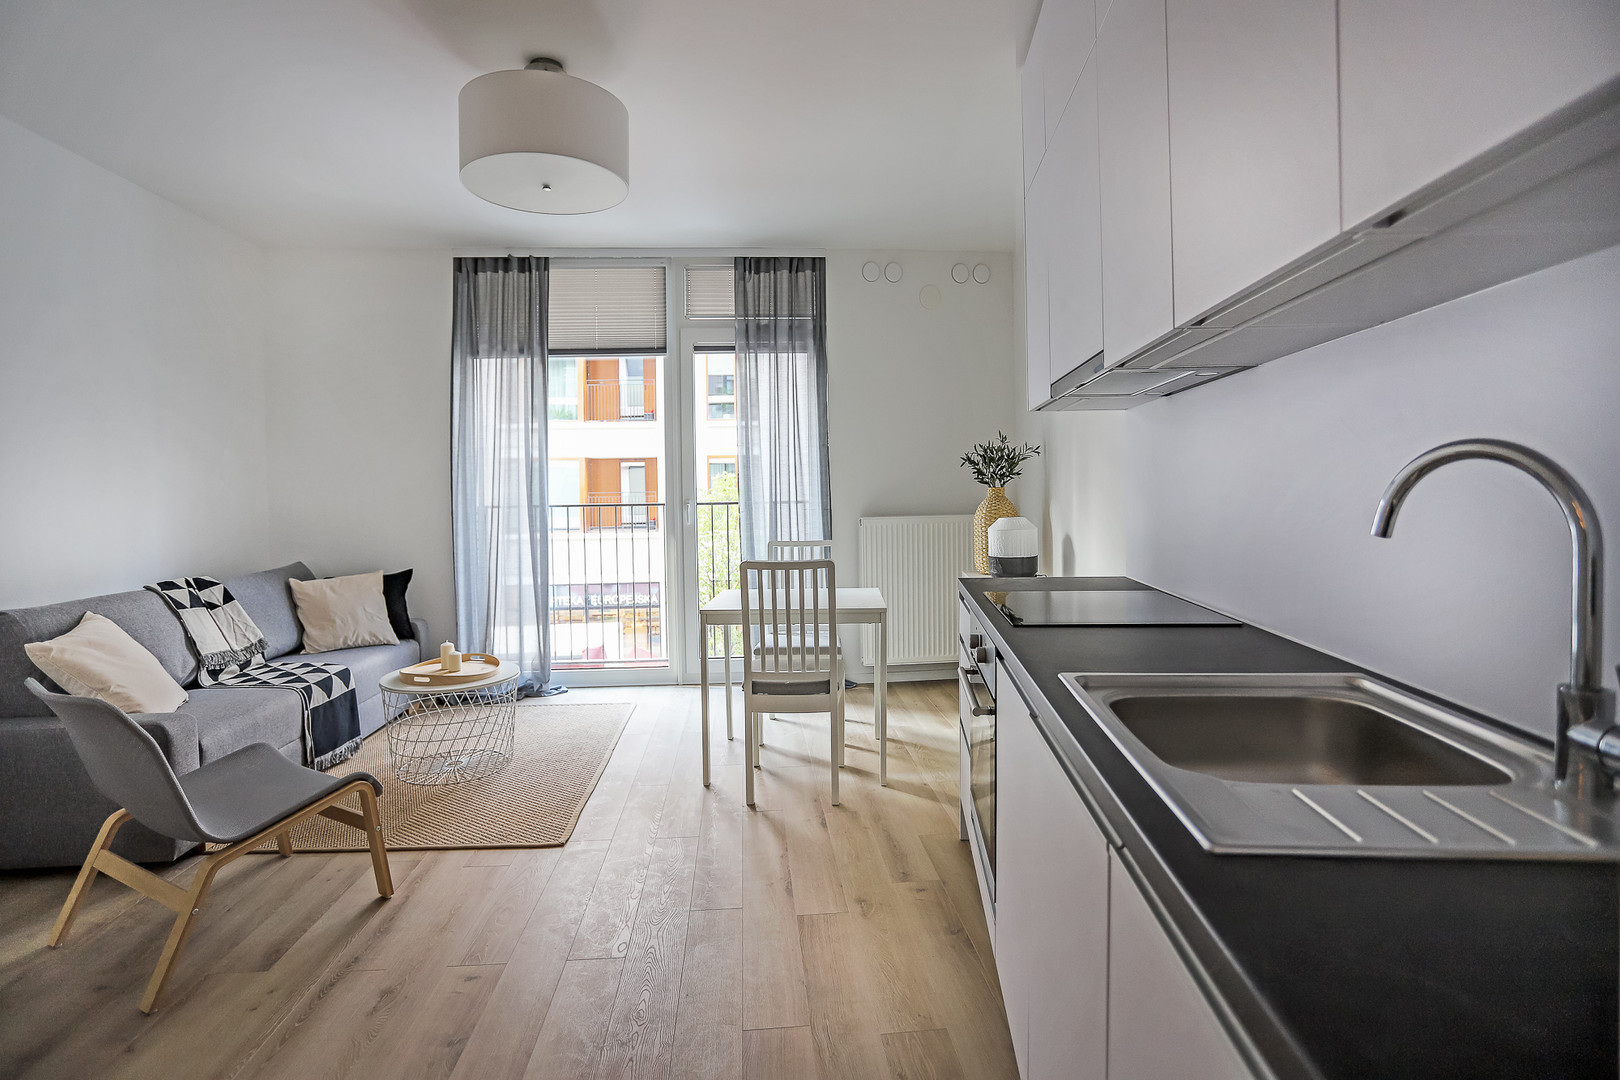 Flat to rent in central warsaw.jpg